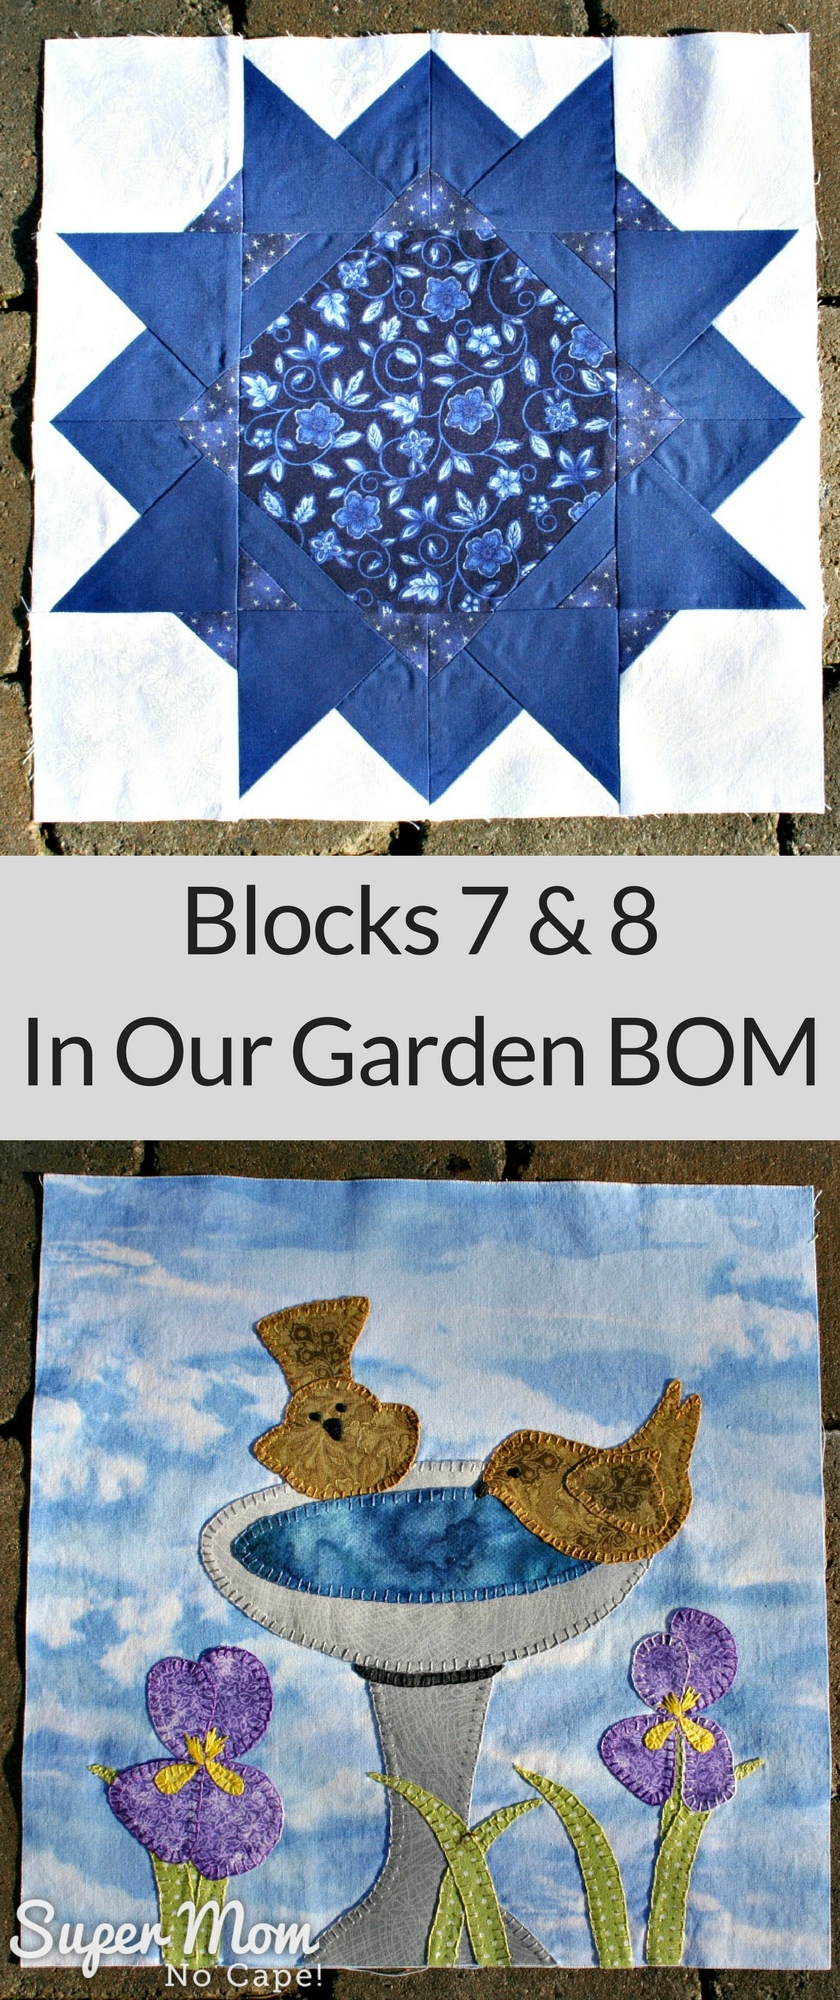 Super Mom - No Cape's versions of Blocks 7 and 8 In Our Garden BOM